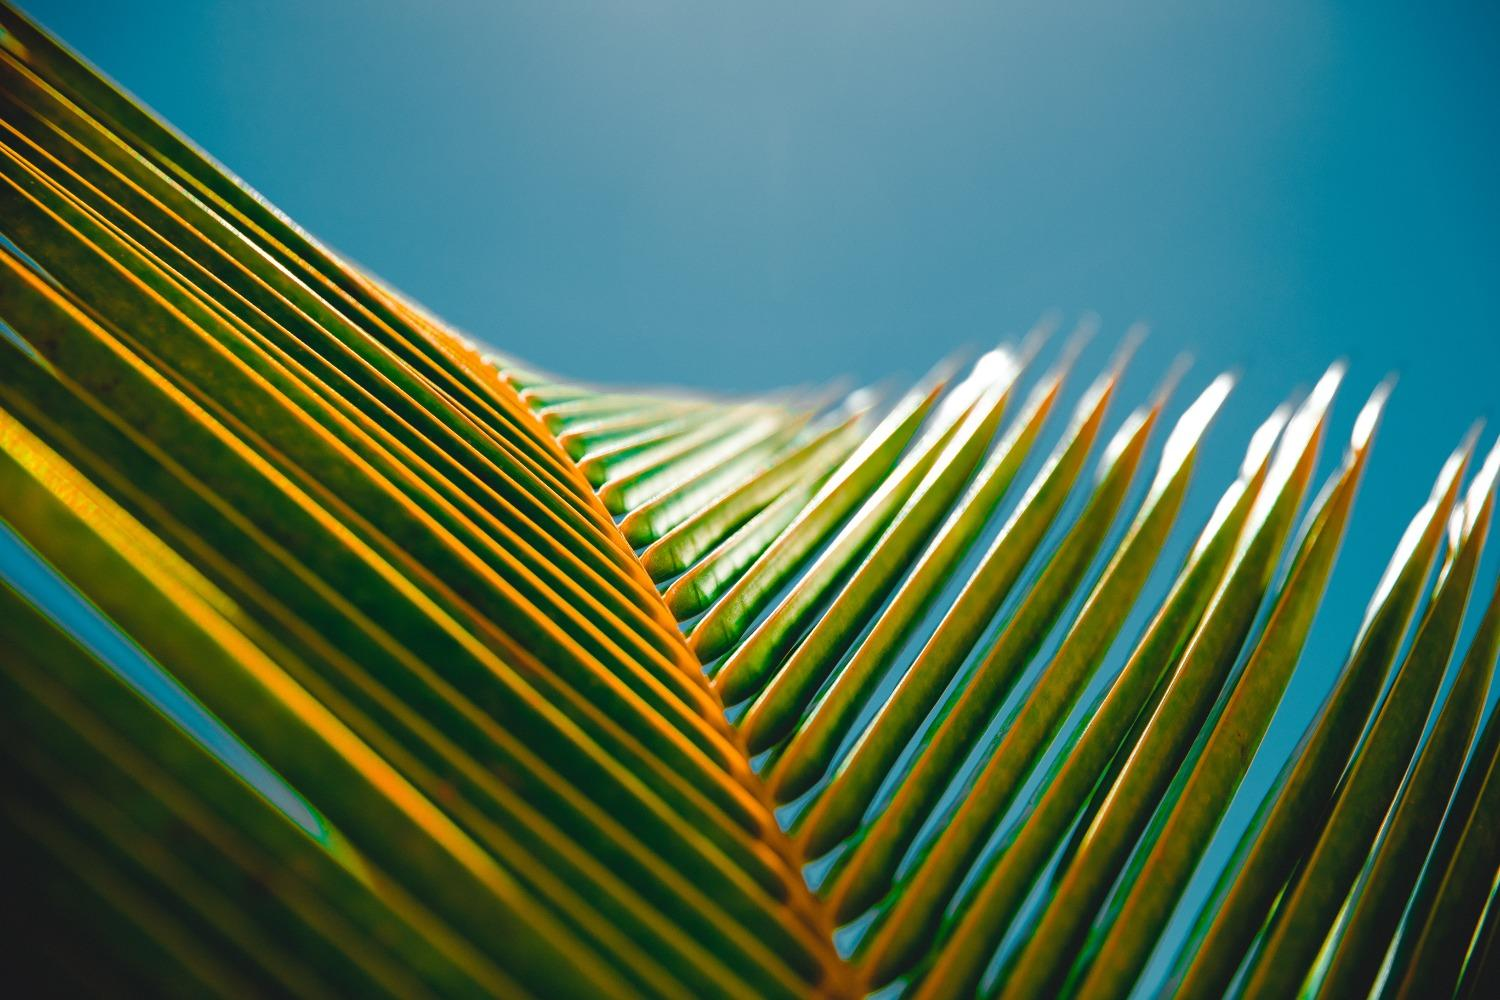 Close-up of a palm branch